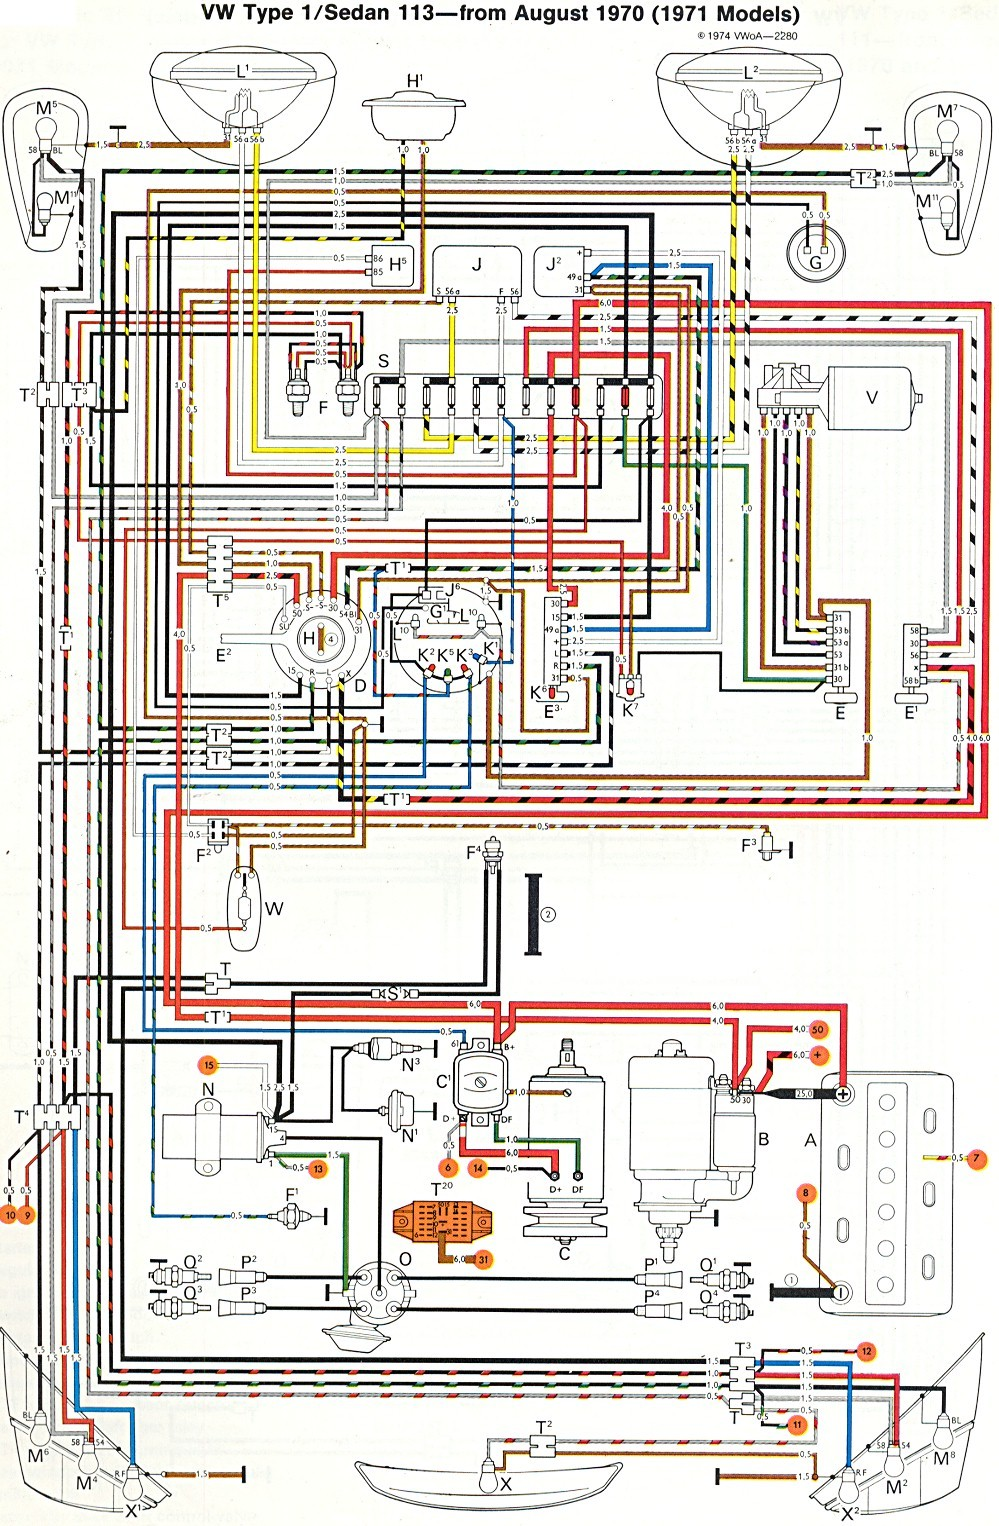 ... vw wiring diagram wiring diagram image rh mainetreasurechest com 1973 VW  Beetle Engine Diagram 1972 VW